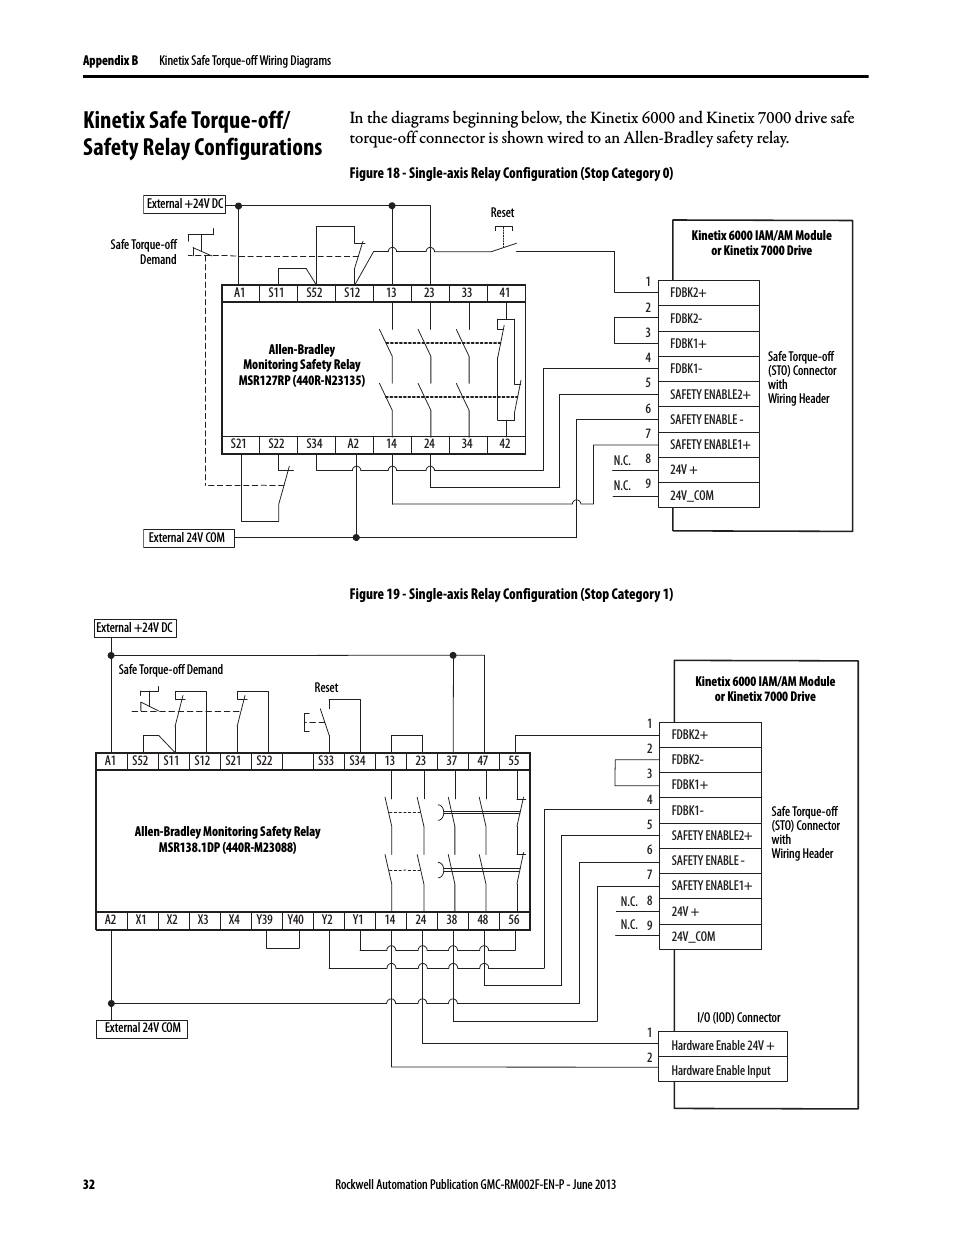 Fine Allen Bradley Safety Relay Wiring Diagram Wirings Diagram Wiring Digital Resources Indicompassionincorg